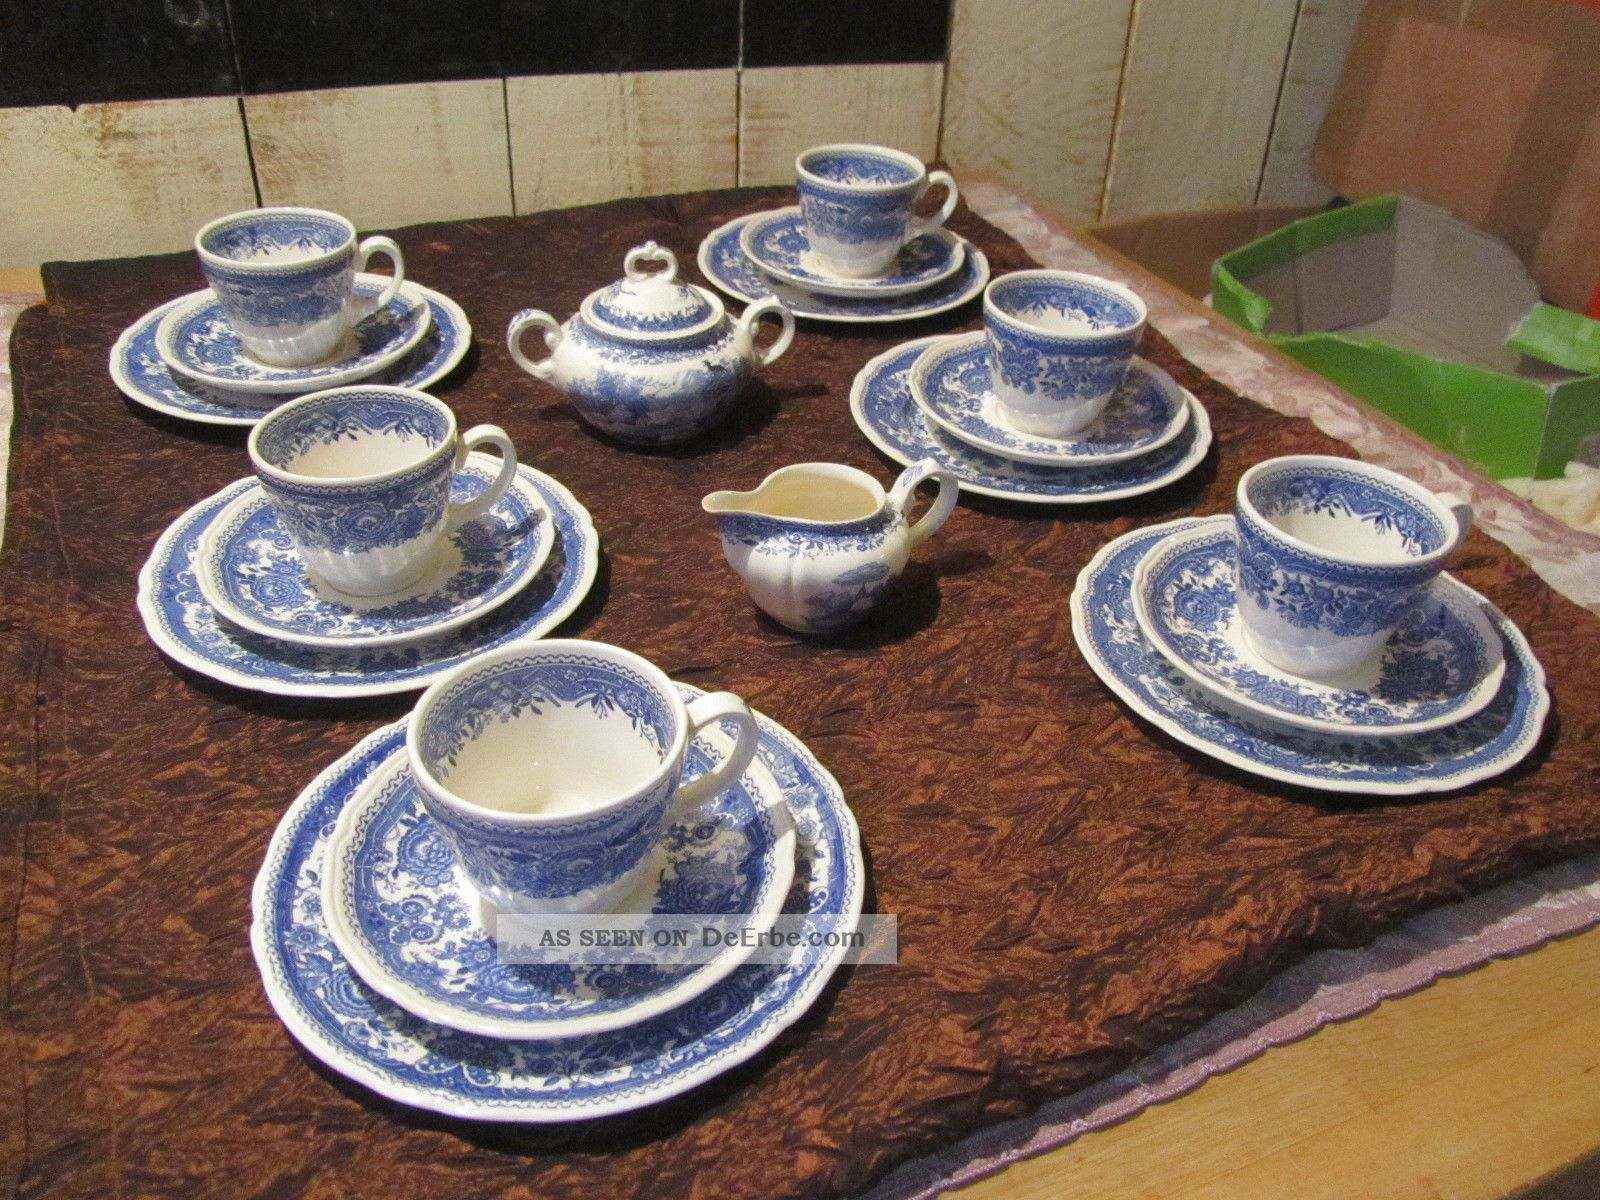 20 tlg kaffee teegeschirr villeroy boch burgenland blau mettlach unterglasur. Black Bedroom Furniture Sets. Home Design Ideas